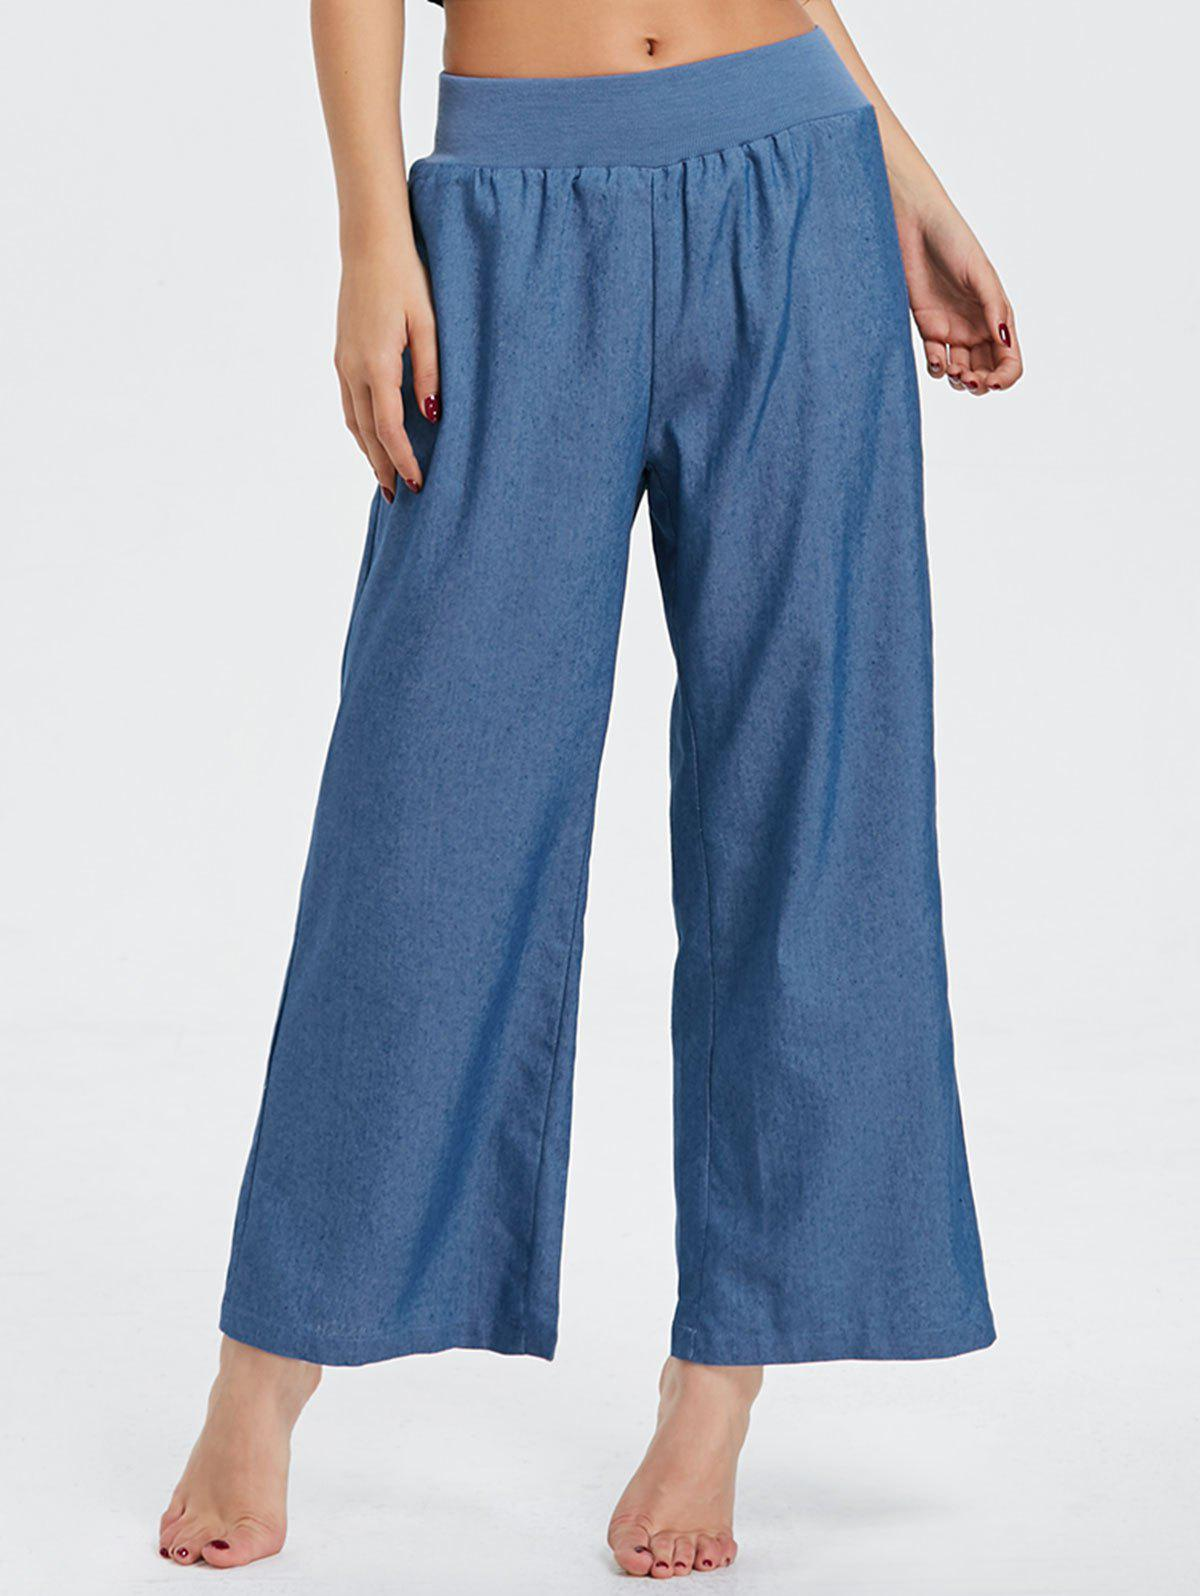 Wide Leg Elastic Waist Denim Pants - BLUE S